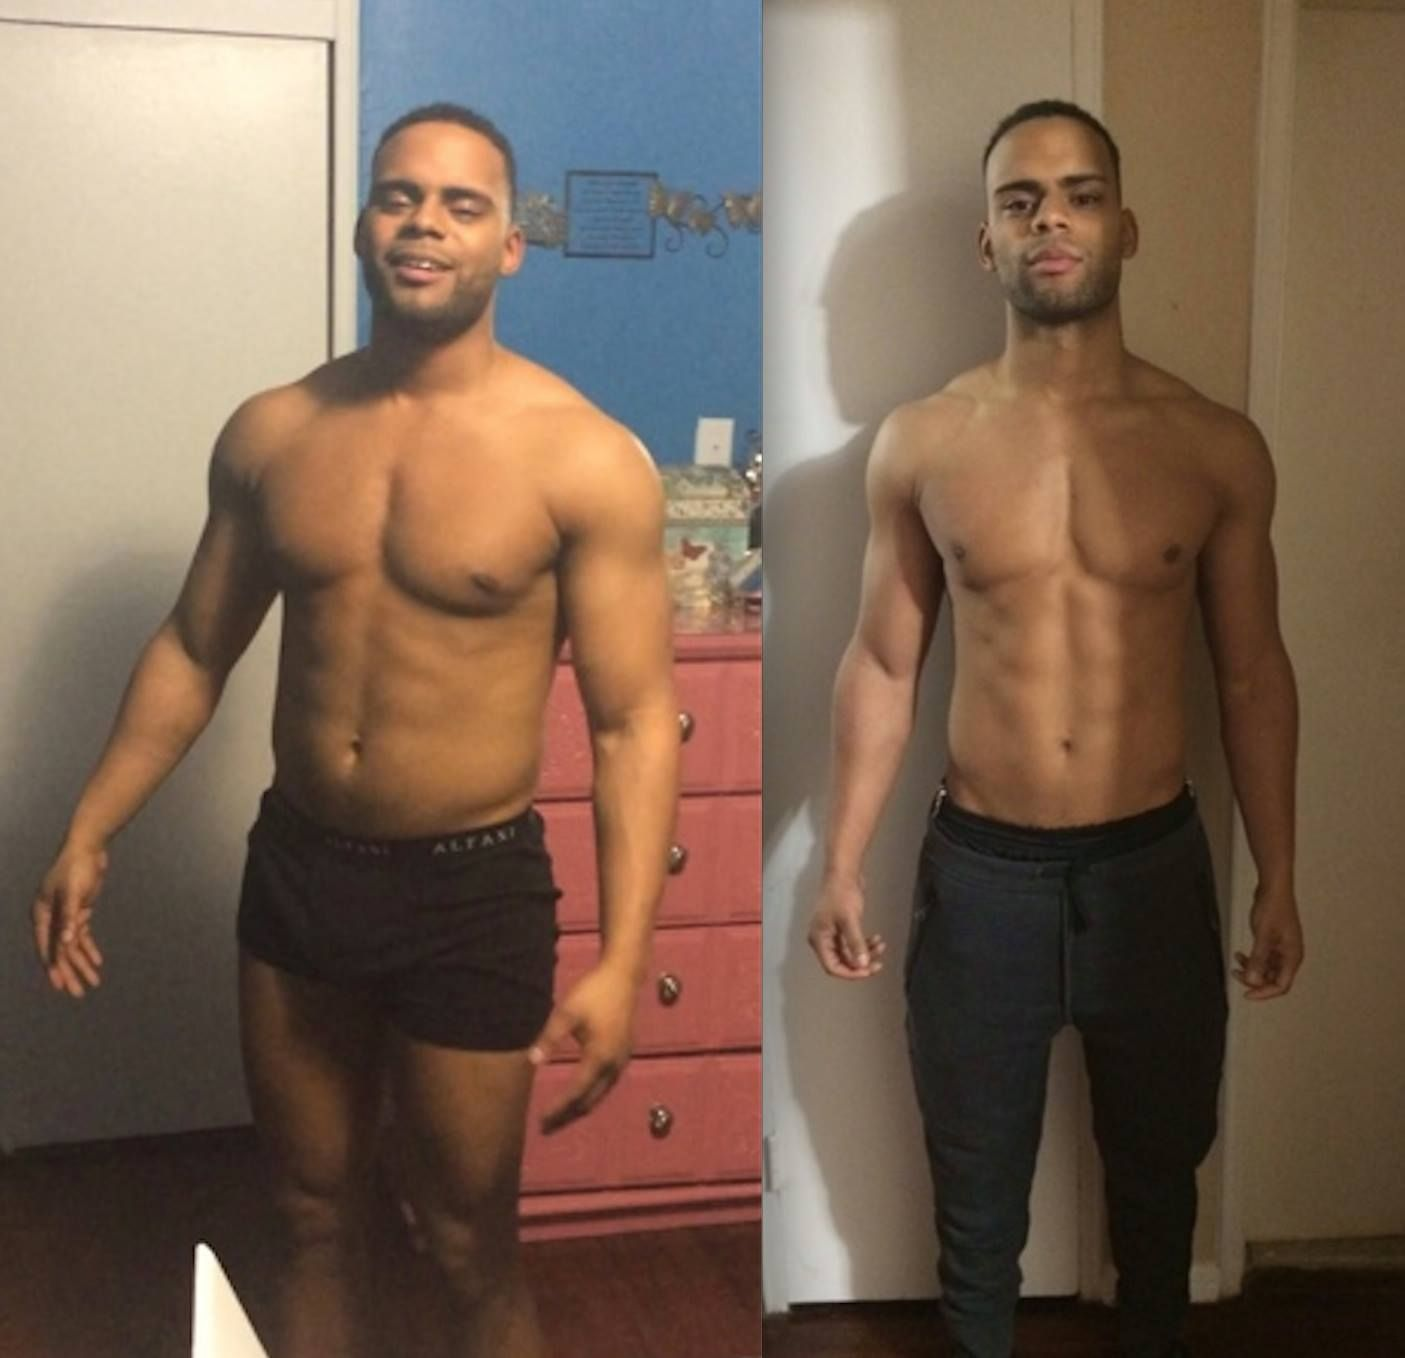 river jack weight loss clinic